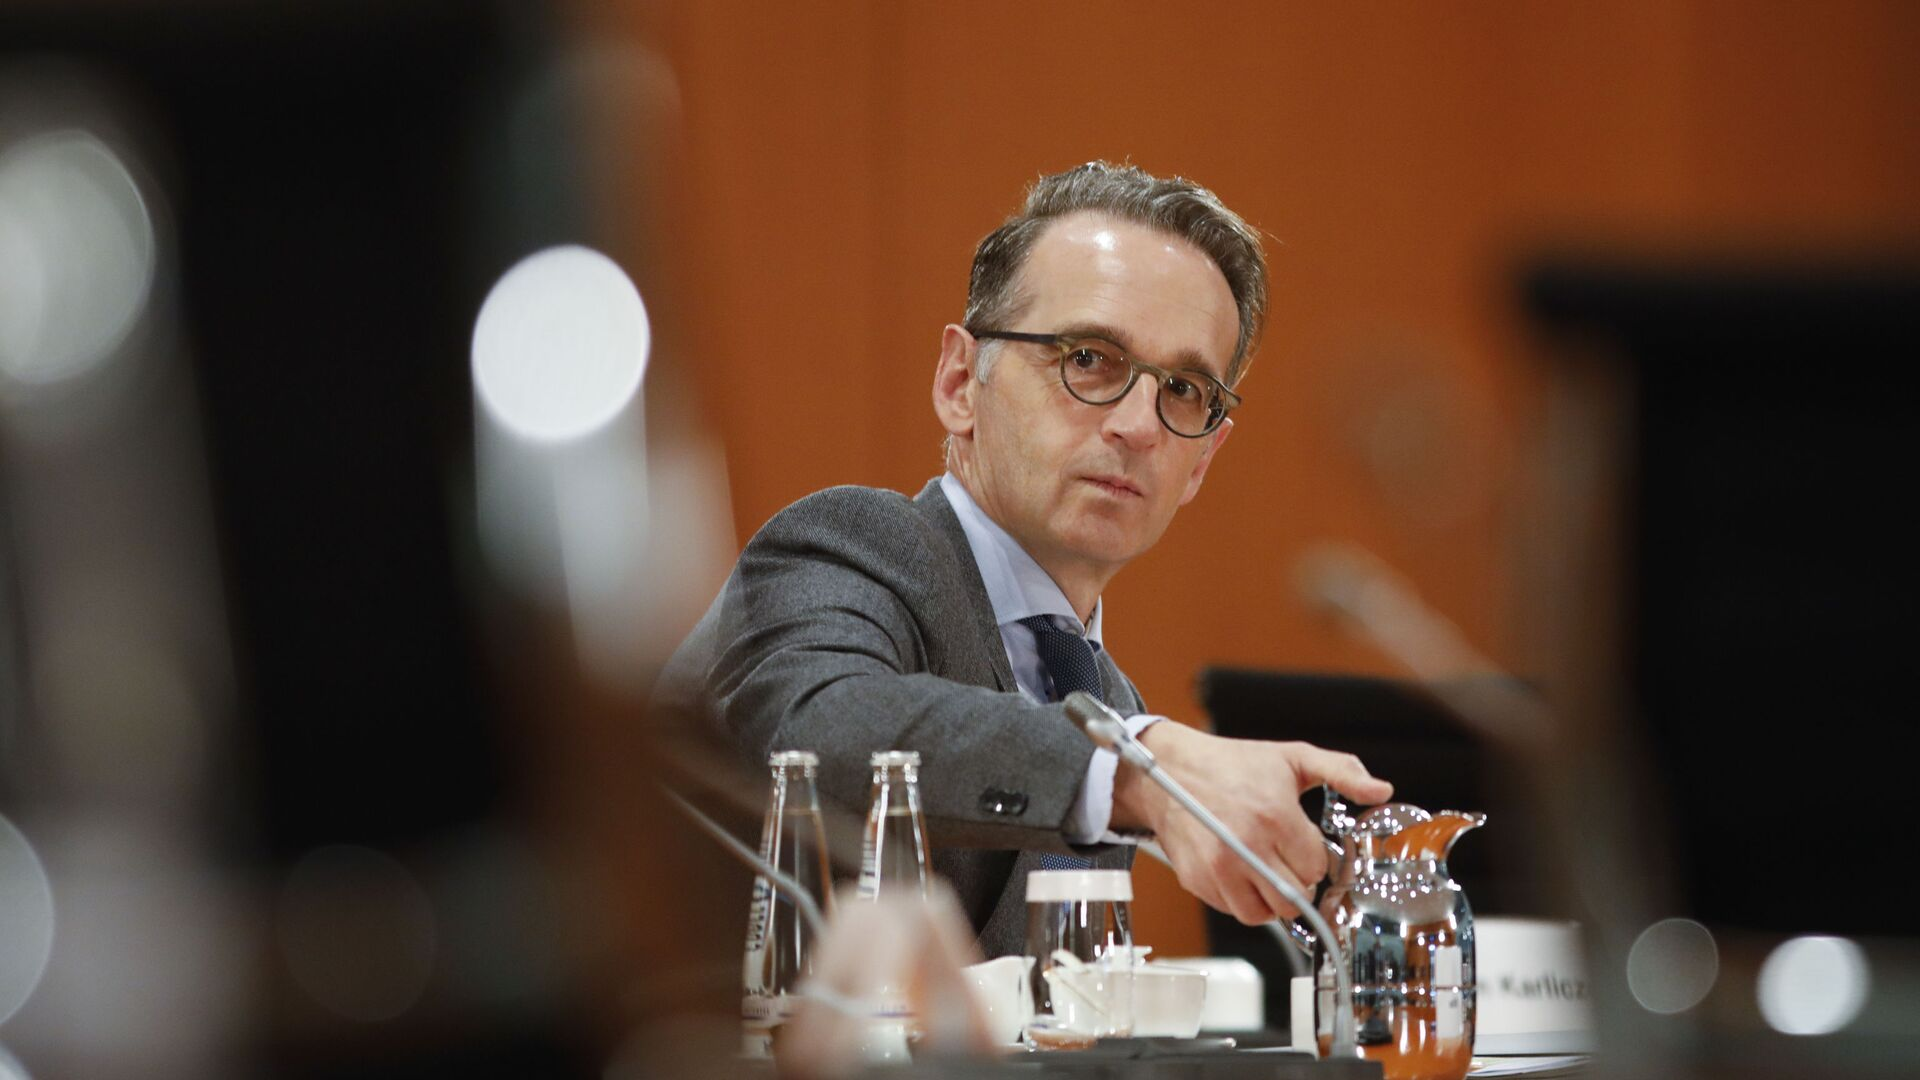 German Foreign Minister Heiko Maas attends the weekly cabinet meeting of the German government at the chancellery in Berlin, Germany, Wednesday, Oct. 7, 2020 - Sputnik International, 1920, 31.08.2021